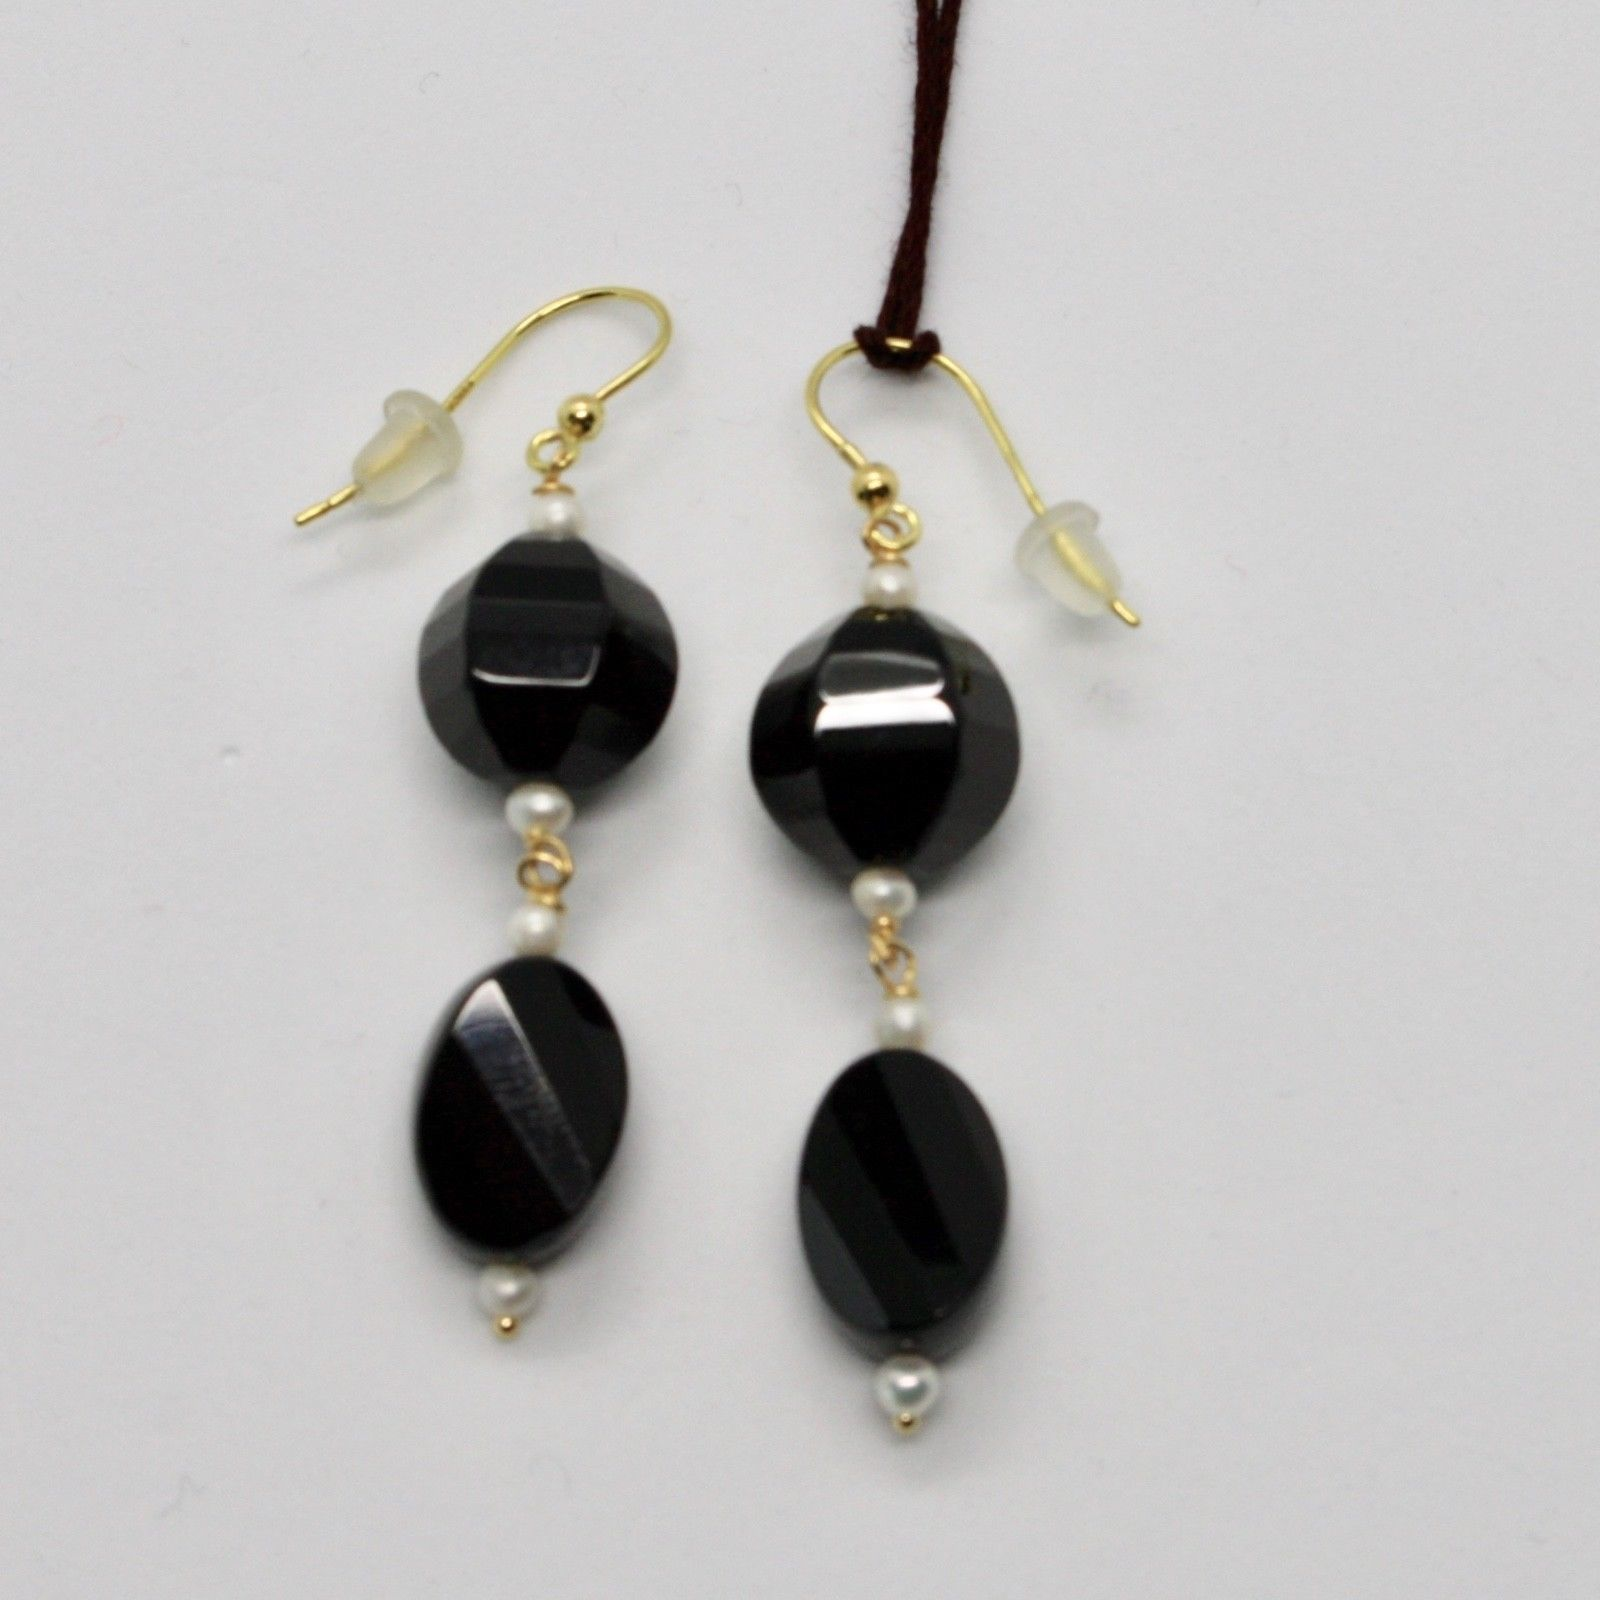 SOLID 18K YELLOW GOLD EARRINGS WITH WHITE PEARLS AND BLACK ONYX MADE IN ITALY